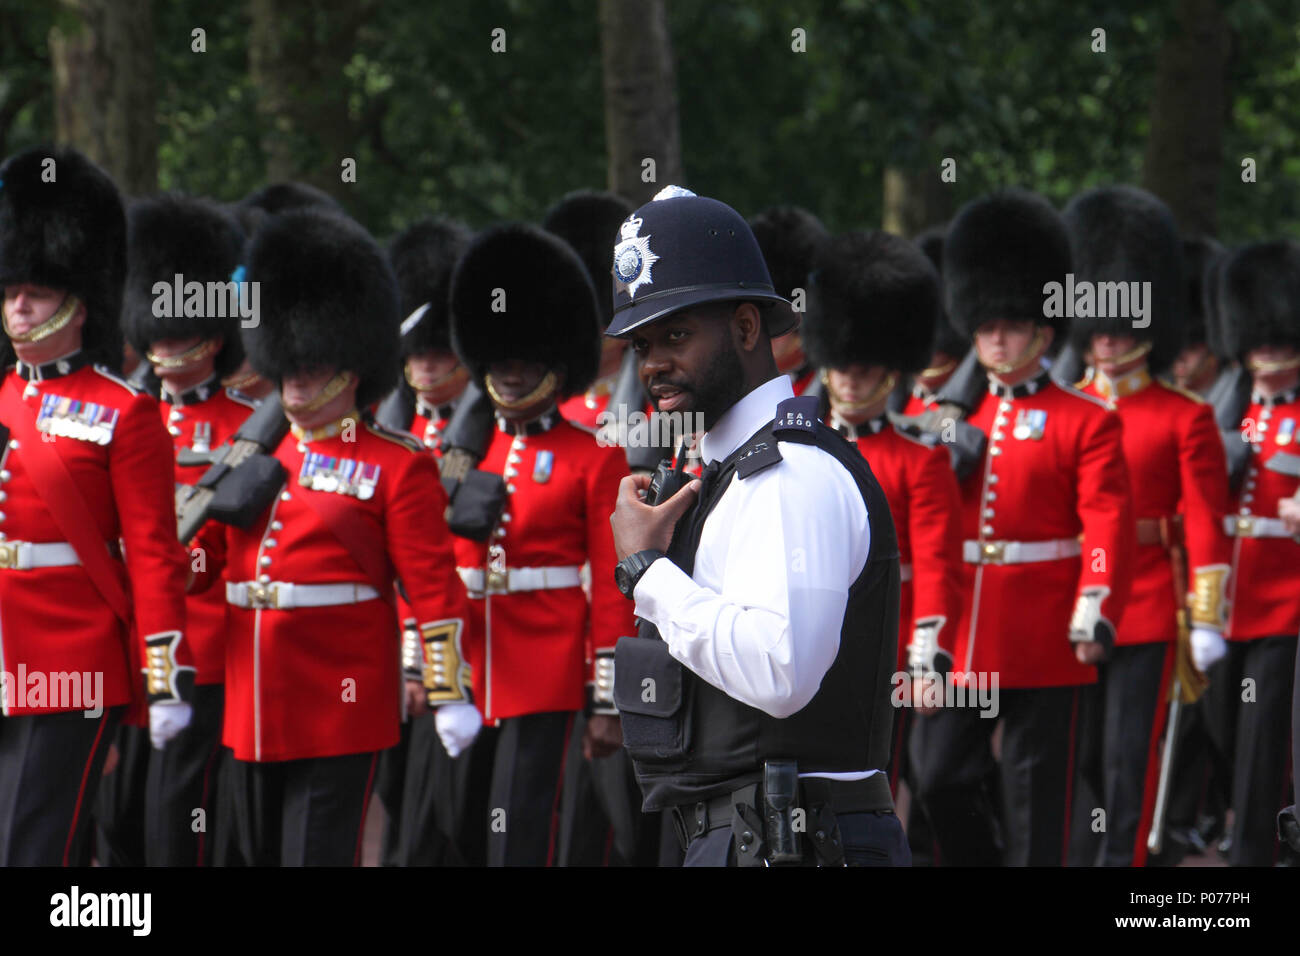 London, UK 9 June 2018: A black Metropolitan Police Officer seen by Hundreds of Guardsmen marching along the Mall to the Horse Guards Parade Ground as they make their way to the Horse Guards Parade Ground on 9 June 2018. Over 1400 parading soldiers, 200 horses and 400 musicians come together each June in a great display of military precision, horsemanship and fanfare to mark The Queen's official birthday. Credit: David Mbiyu - Stock Image